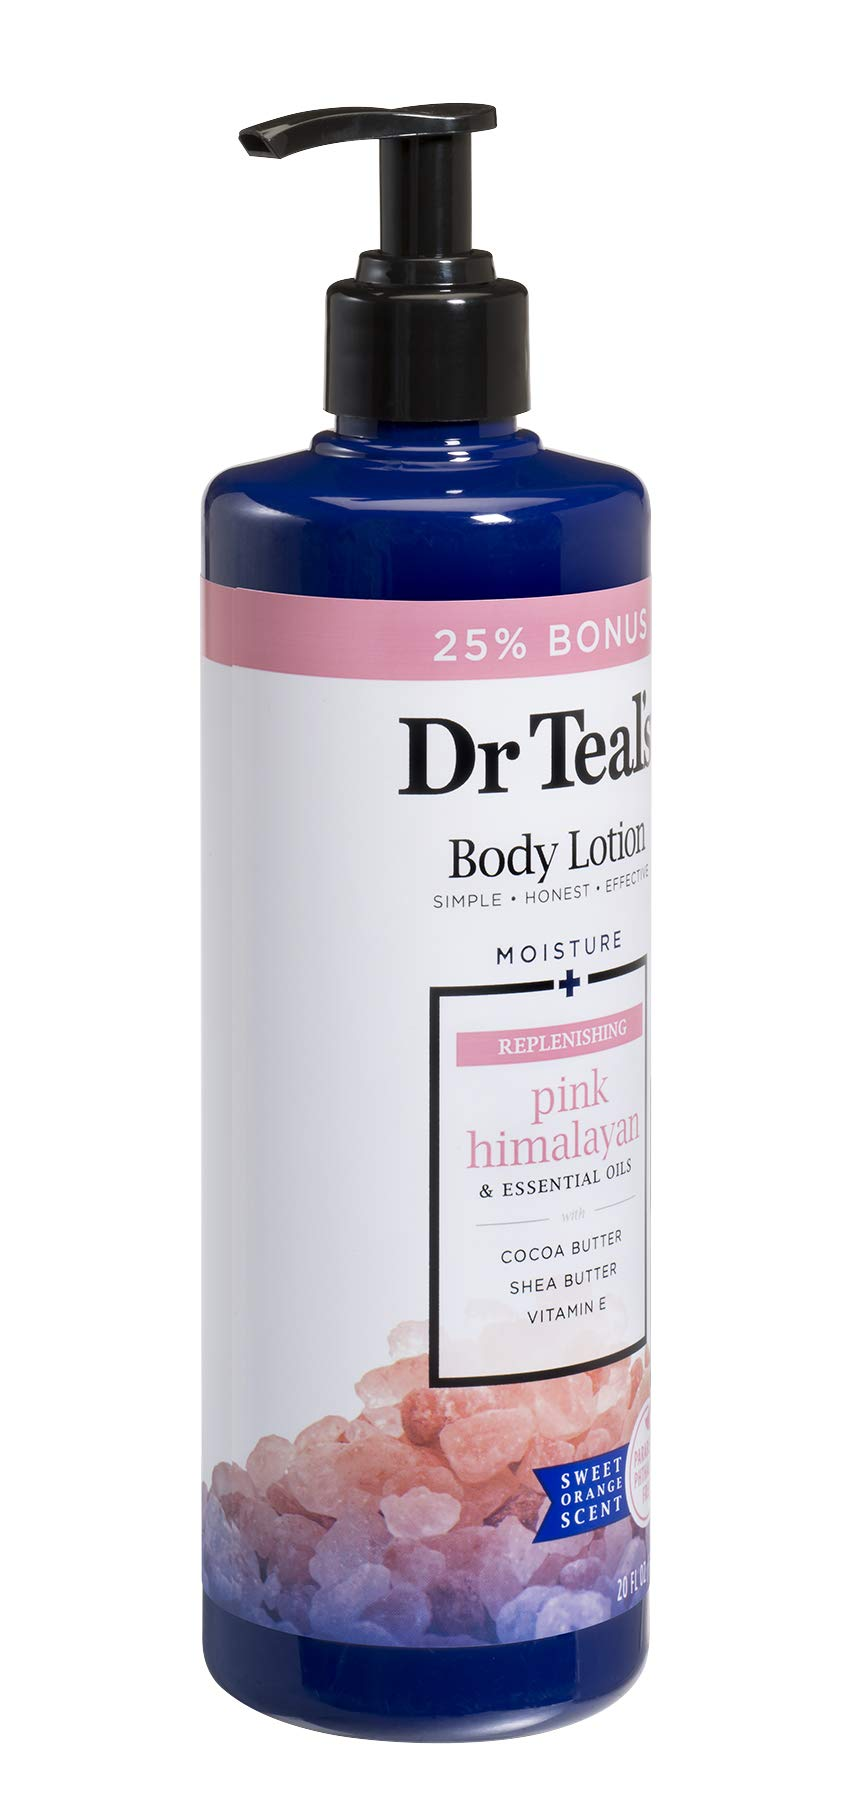 Dr Teal's Body Lotion - Replenishing Pink Himalayan - 20 oz Bonus Size by Dr Teal's